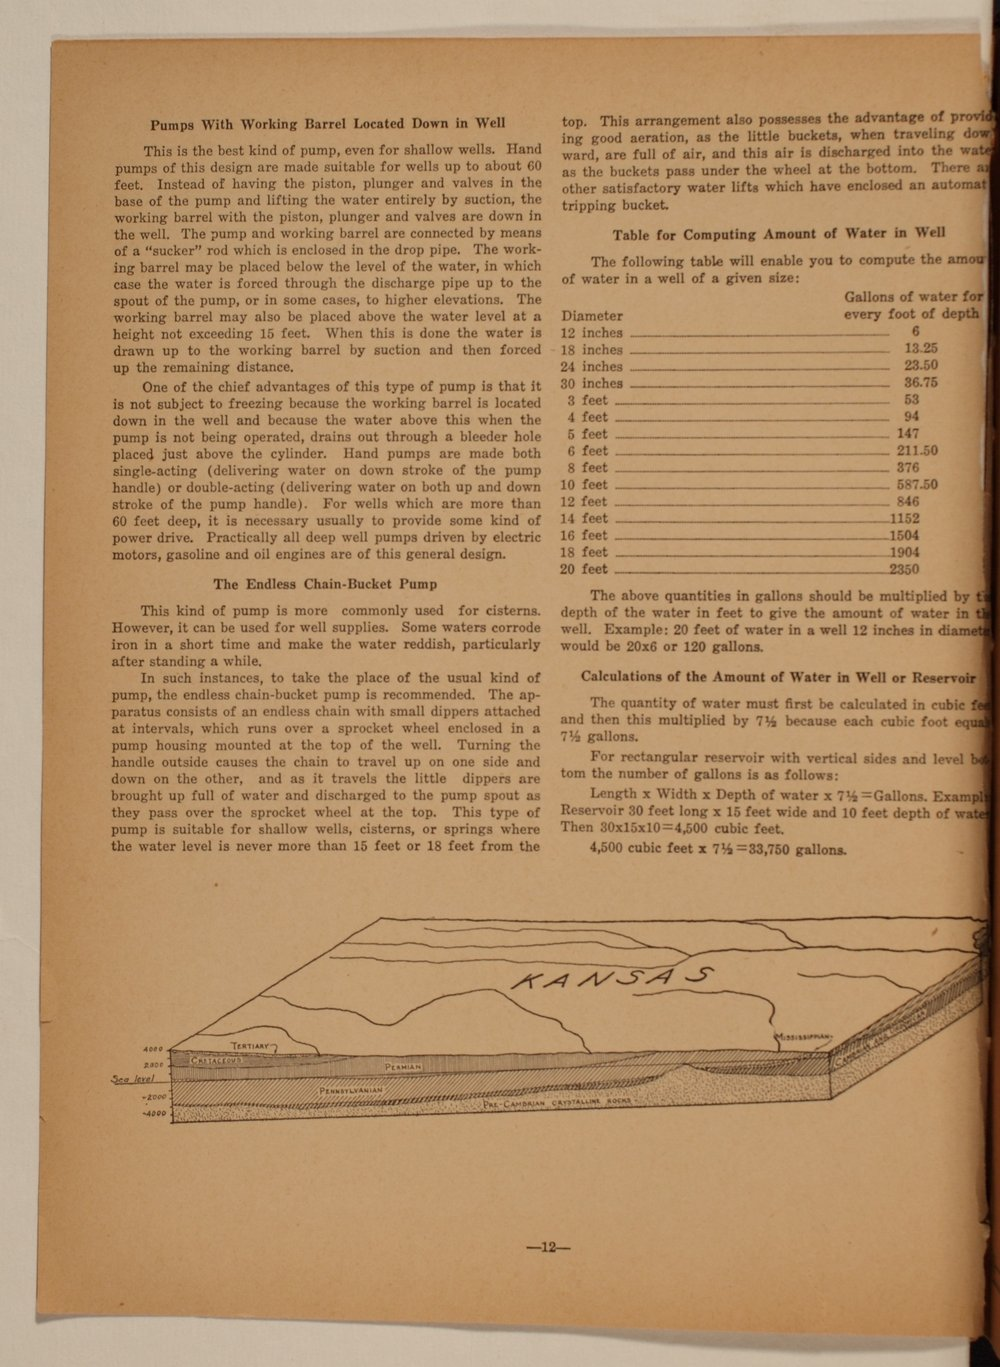 Kansas Emergency Relief Committee, bulletin 89 - 12